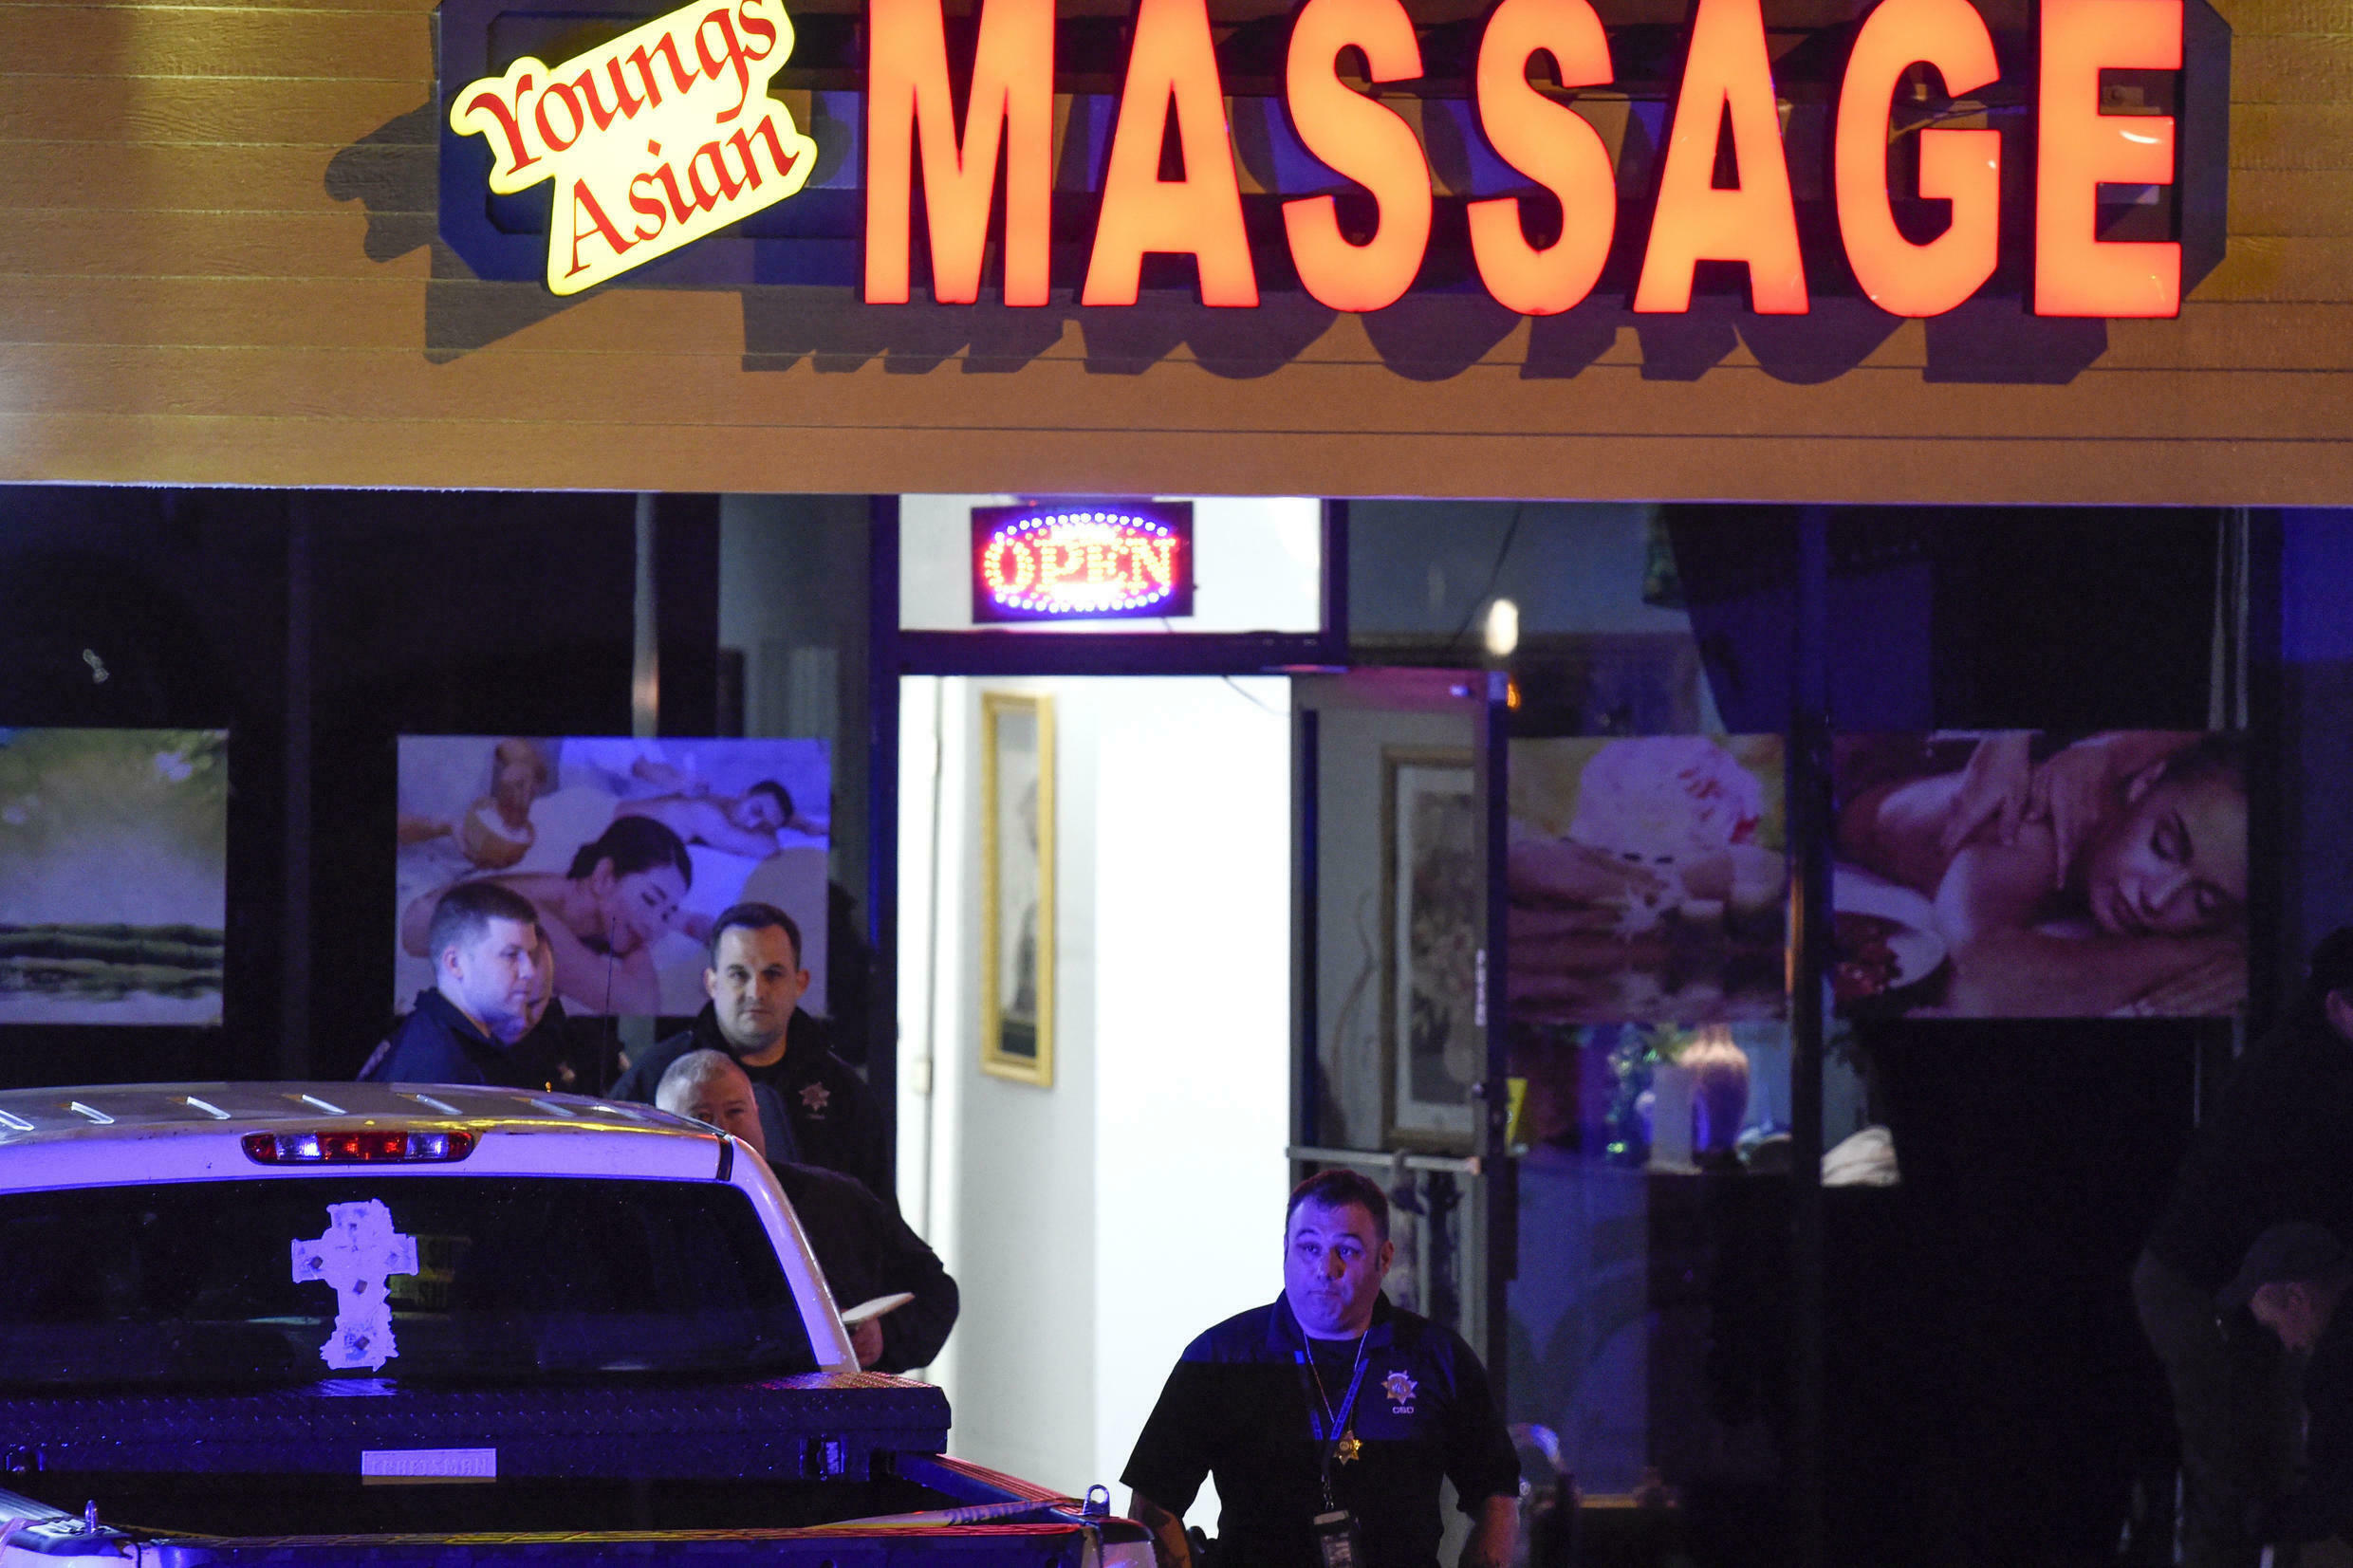 Authorities are investigating a deadly shooting at a massage parlor late Tuesday, March 16, 2021, in Acworth, Ga.